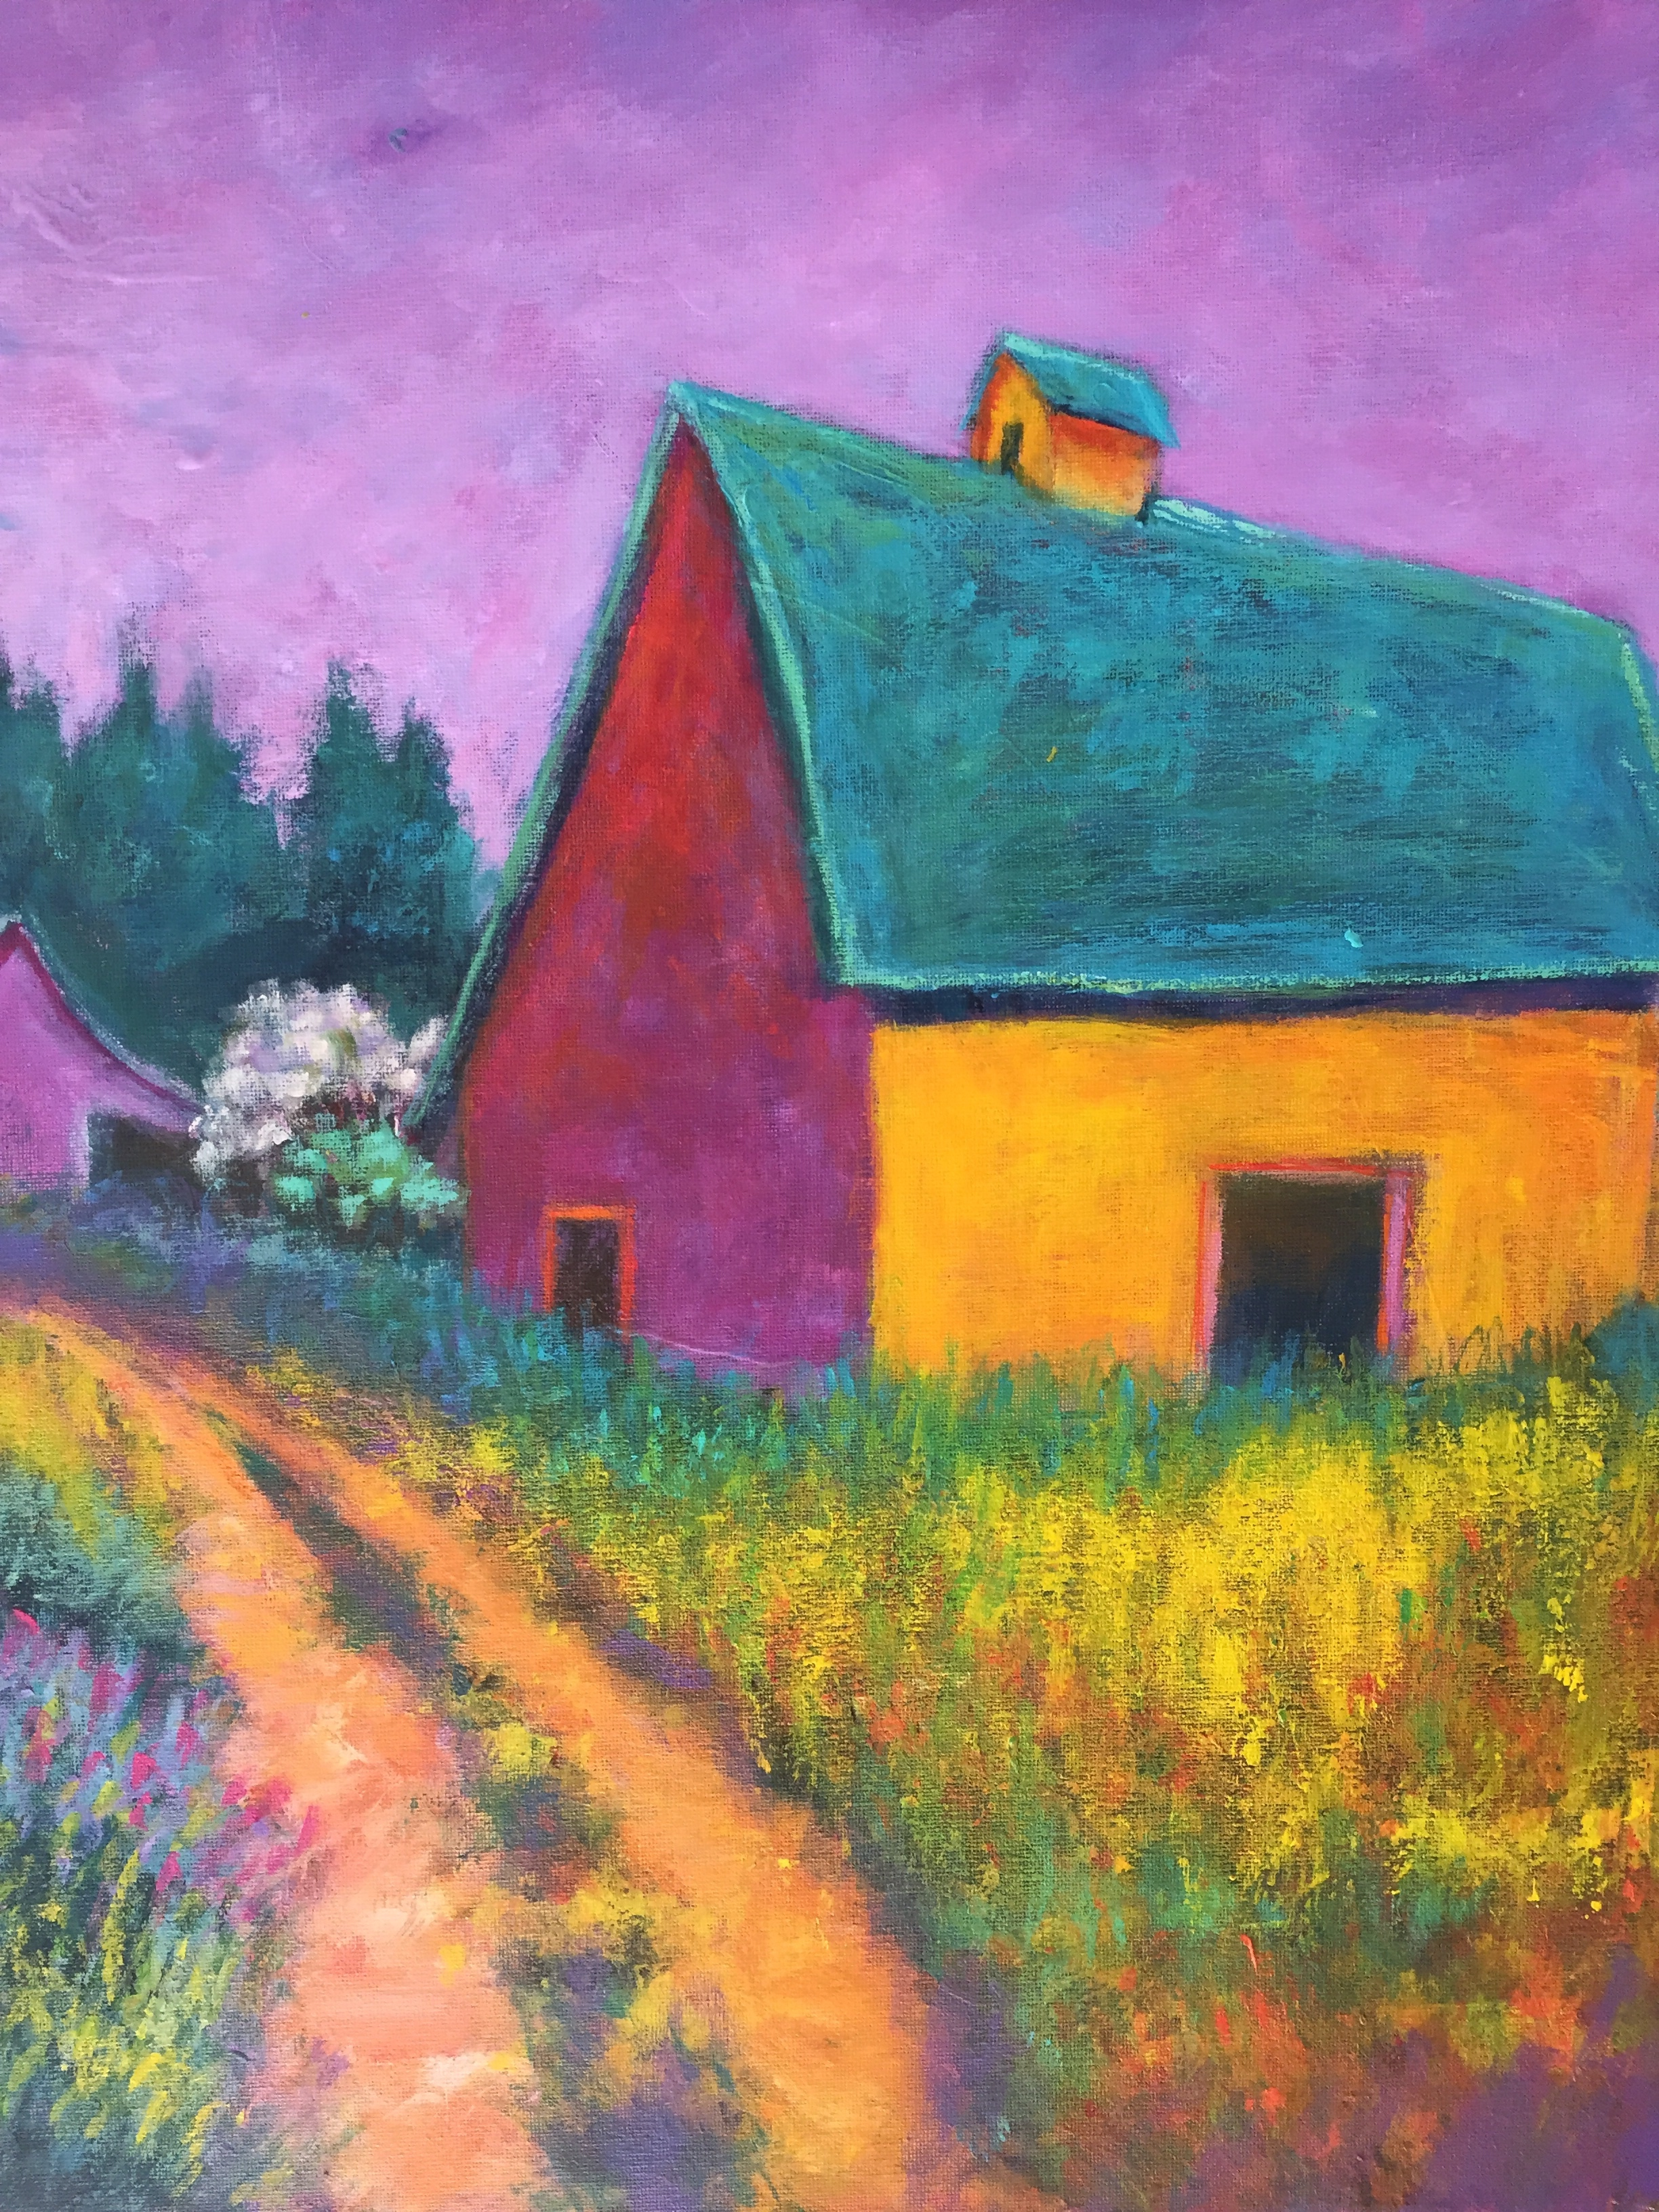 Violet Meets Gold Barn 16 x 20 acrylic $295